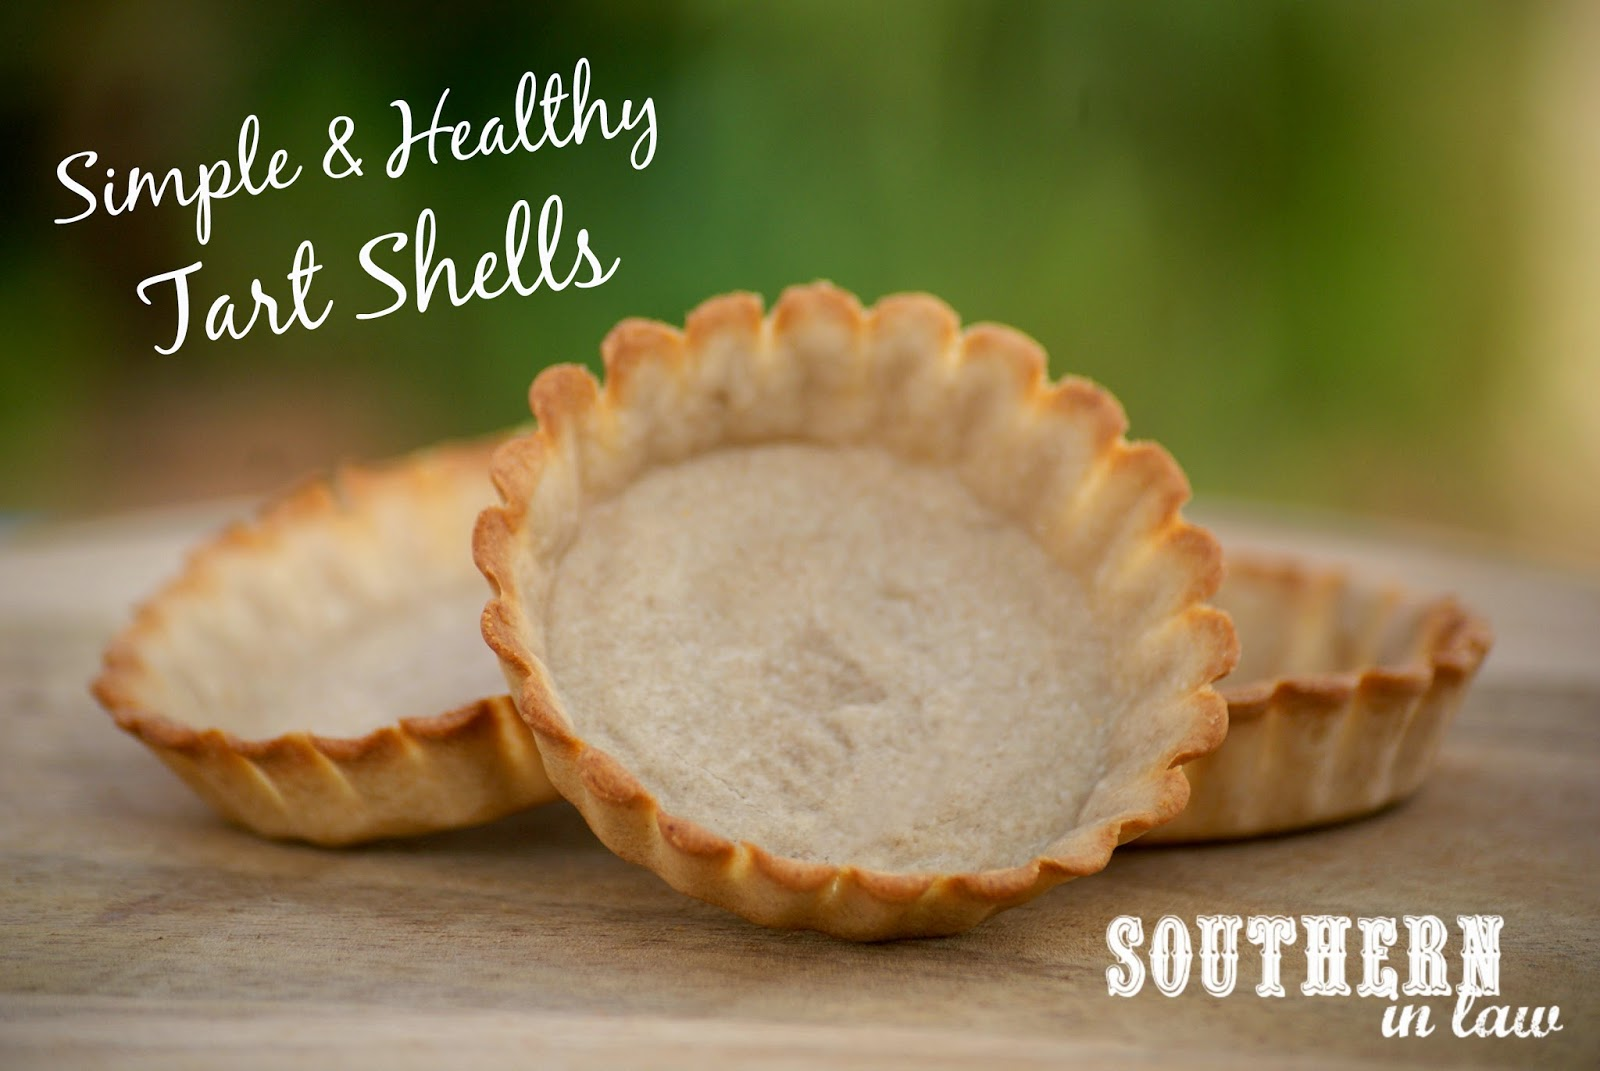 Easy to Make Healthy Pastry Recipe - Tart Shells - Low Fat, Gluten Free, Healthy, Vegan, Egg Free, Dairy Free